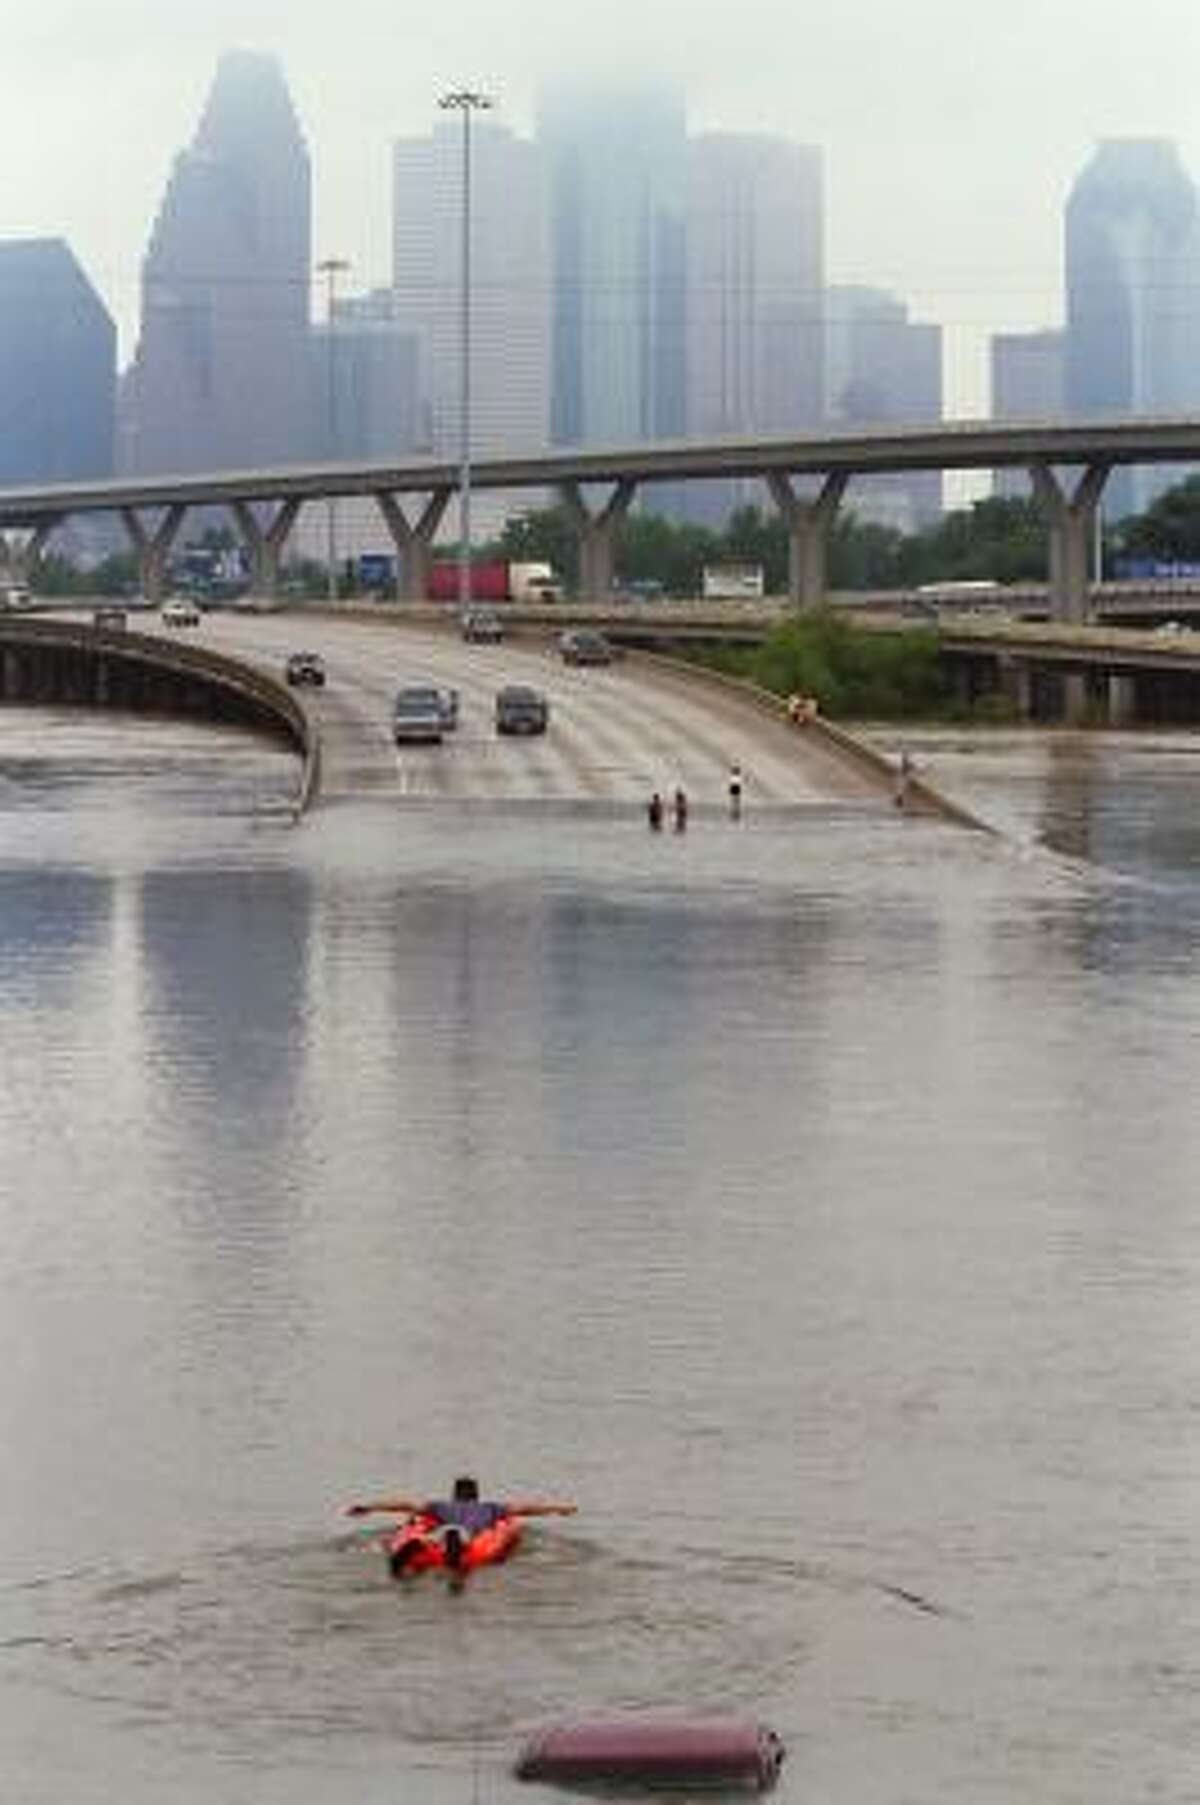 Floodwaters that rose in the wake of Tropical Storm Allison inundated Interstate 45 north of downtown Houston, as seen in this photo taken on June 9, 2001.